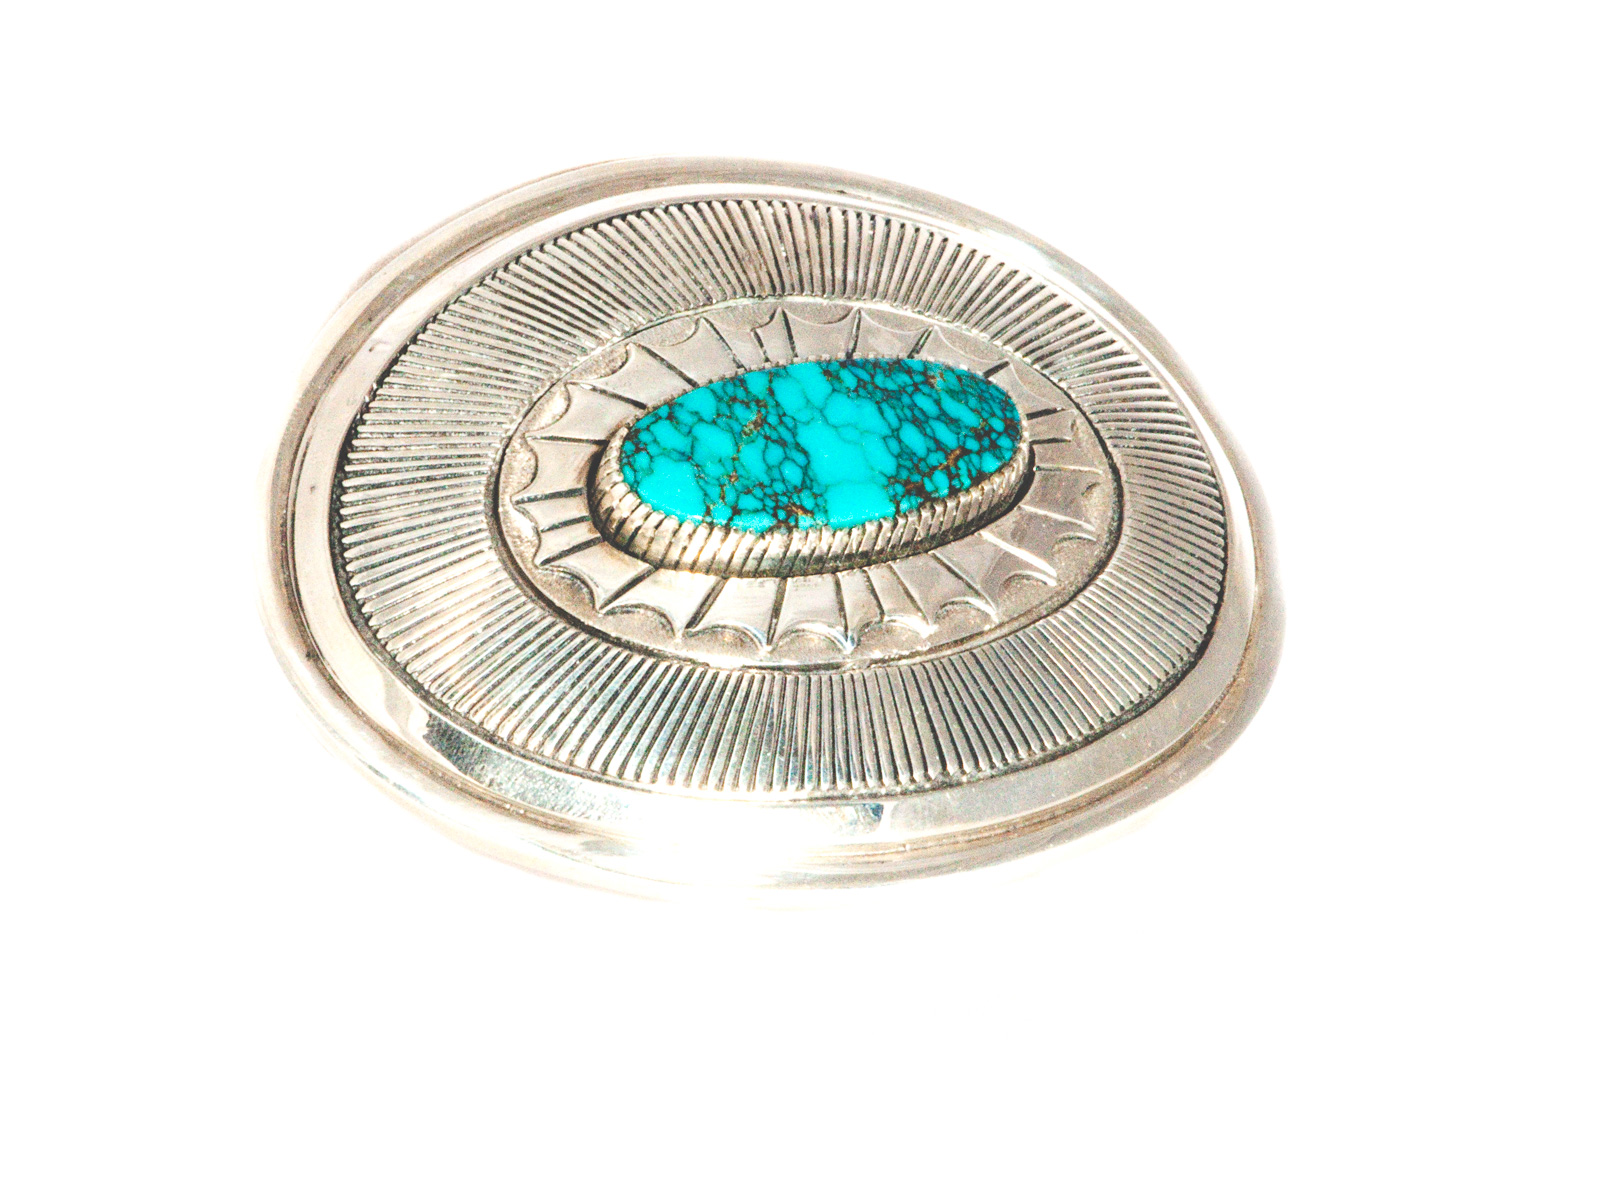 Spider Web Turquoise Belt Buckle